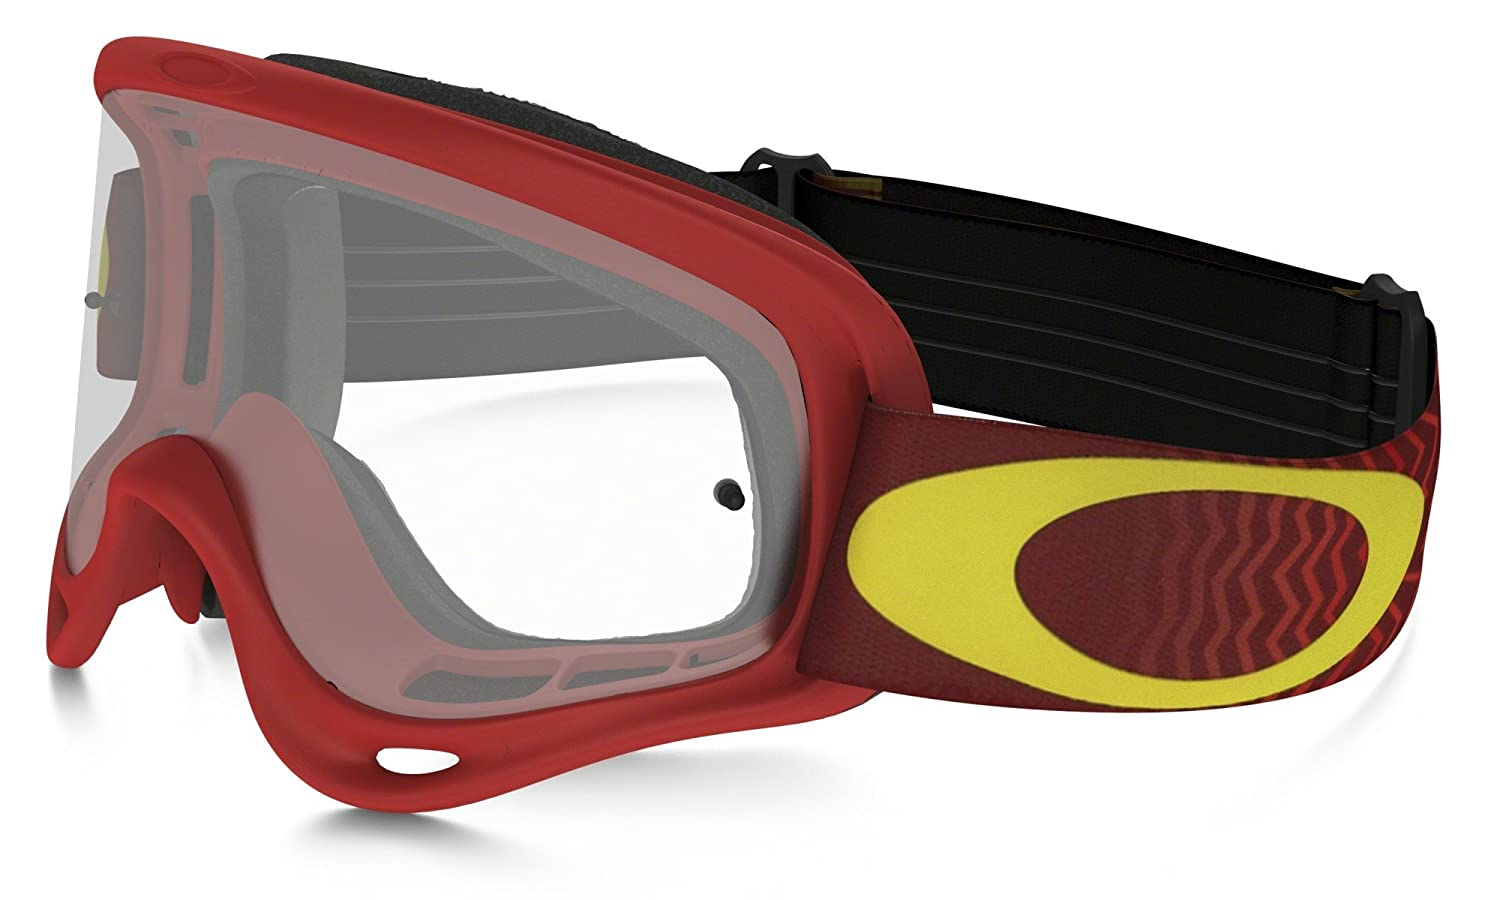 com oakley xs o frame graphic frame mx goggles true com oakley xs o frame graphic frame mx goggles true carbon fiber frame clear lens one size automotive